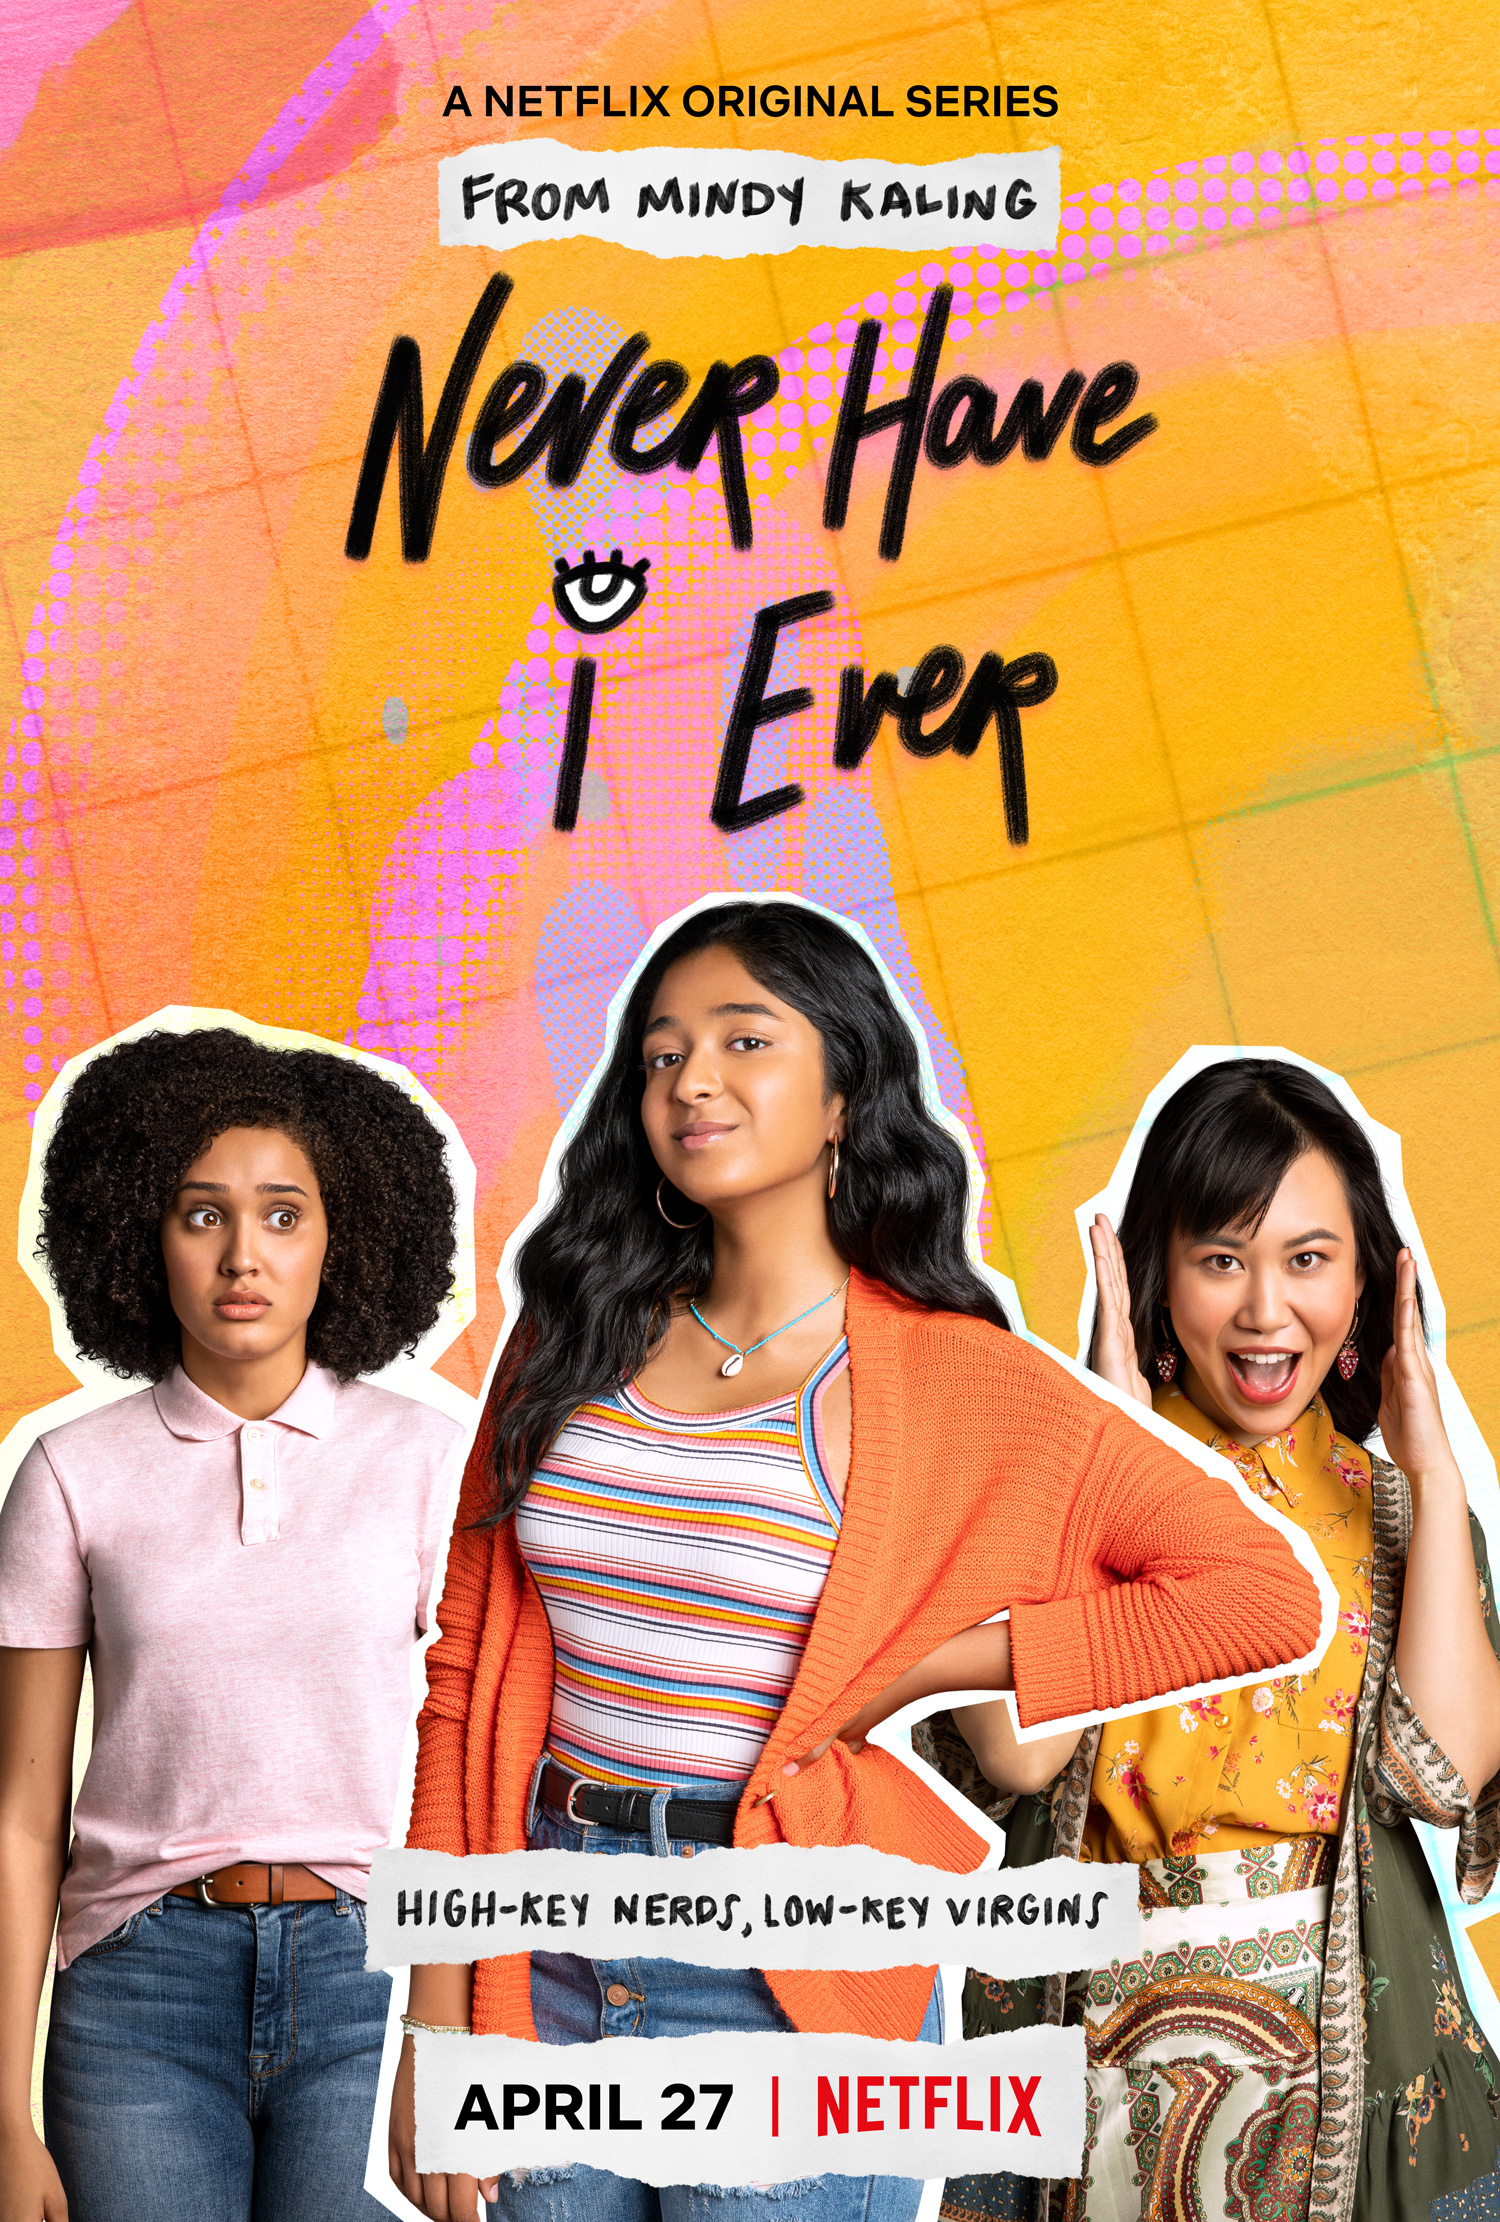 My Thoughts on the Netflix Series 'Never Have I Ever'